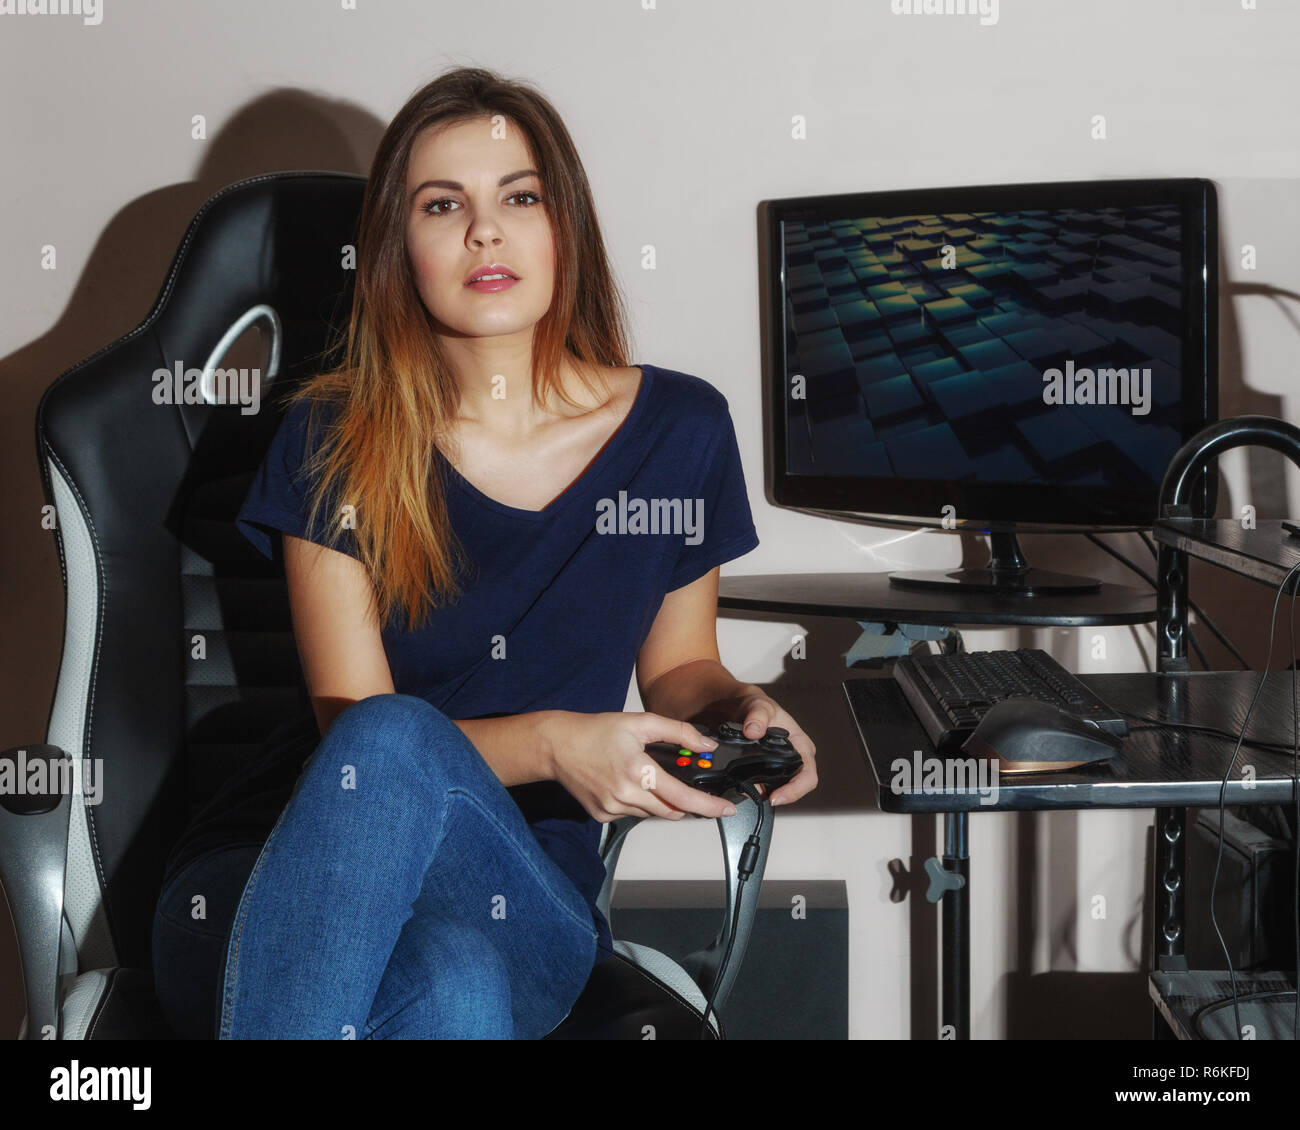 A young woman with a game controller in hand - Stock Image